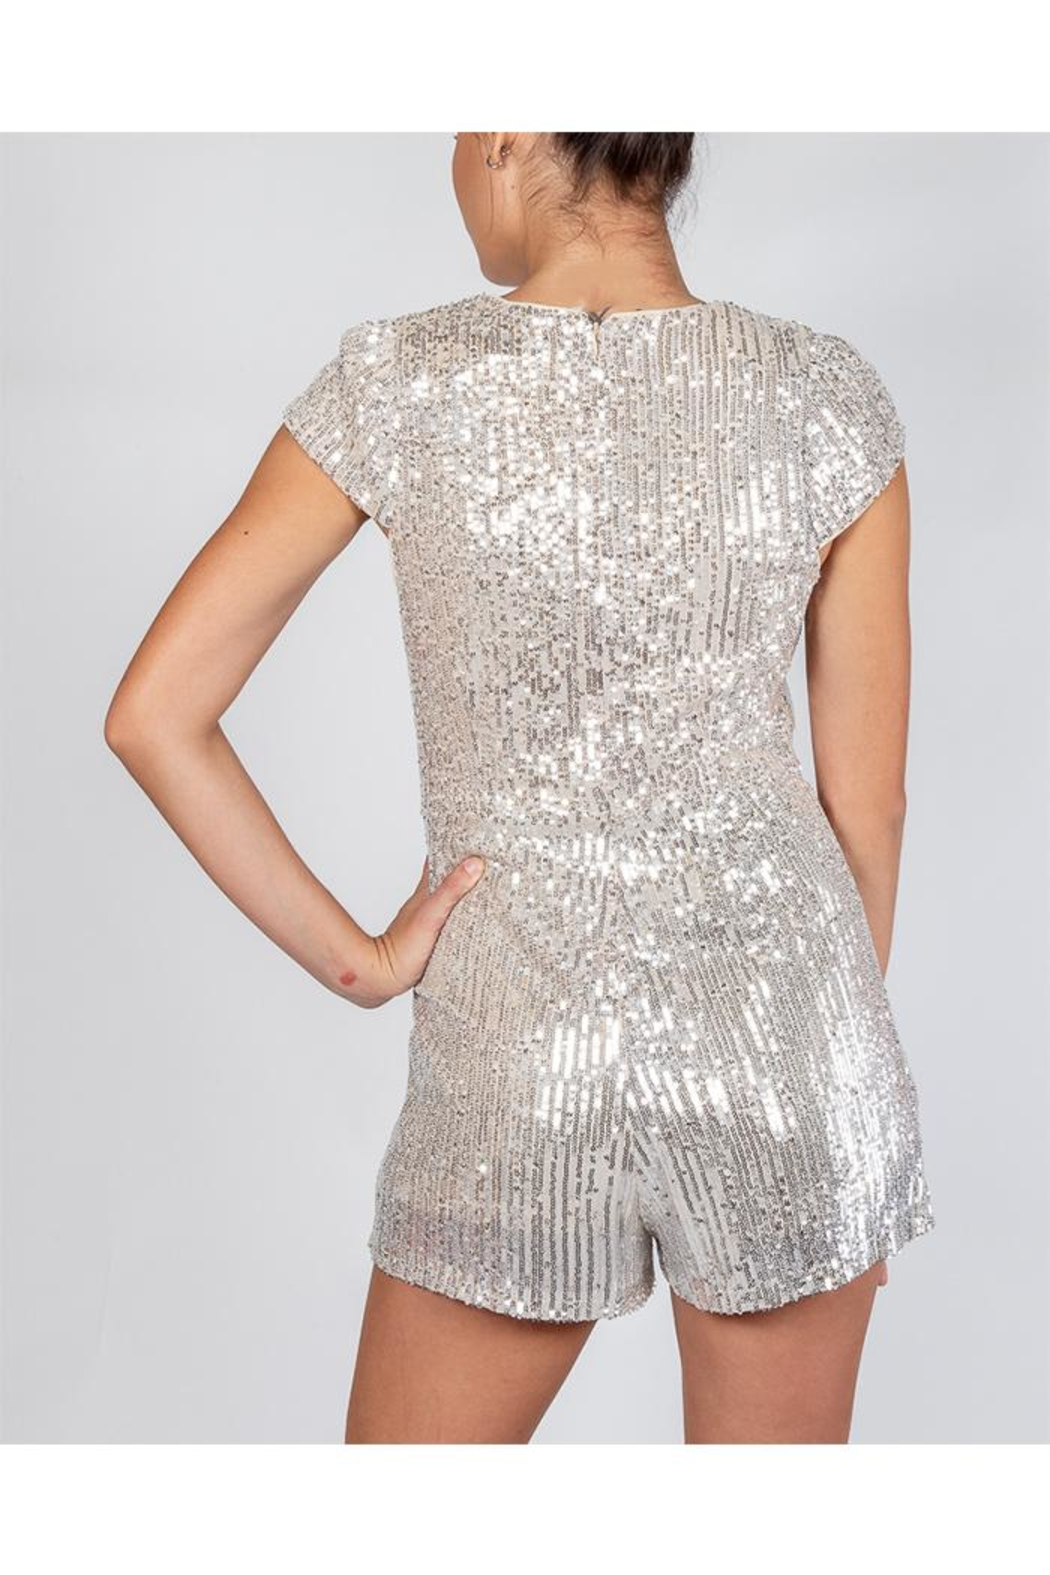 luxxel Silver Sequin Romper - Back Cropped Image